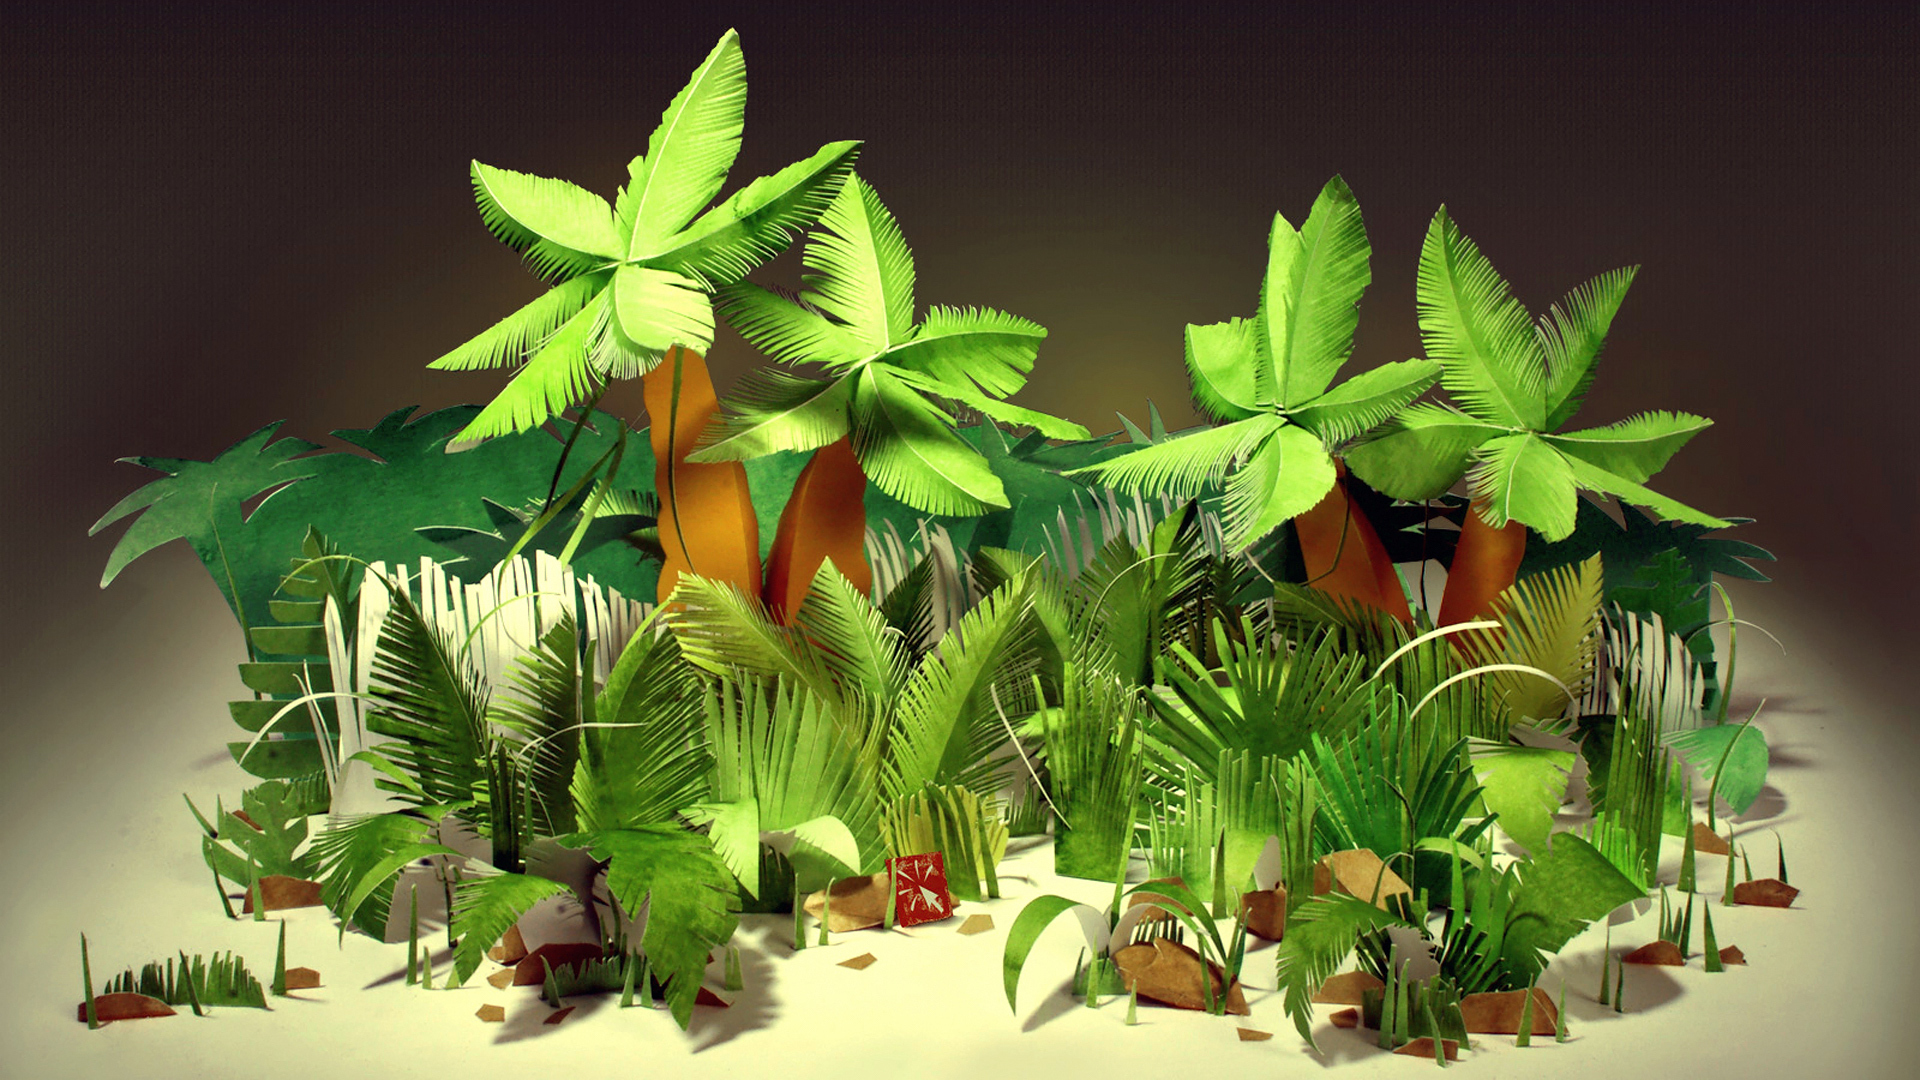 tropical palm trees bushes leaves paper cardboard wallpaper background 1920x1080